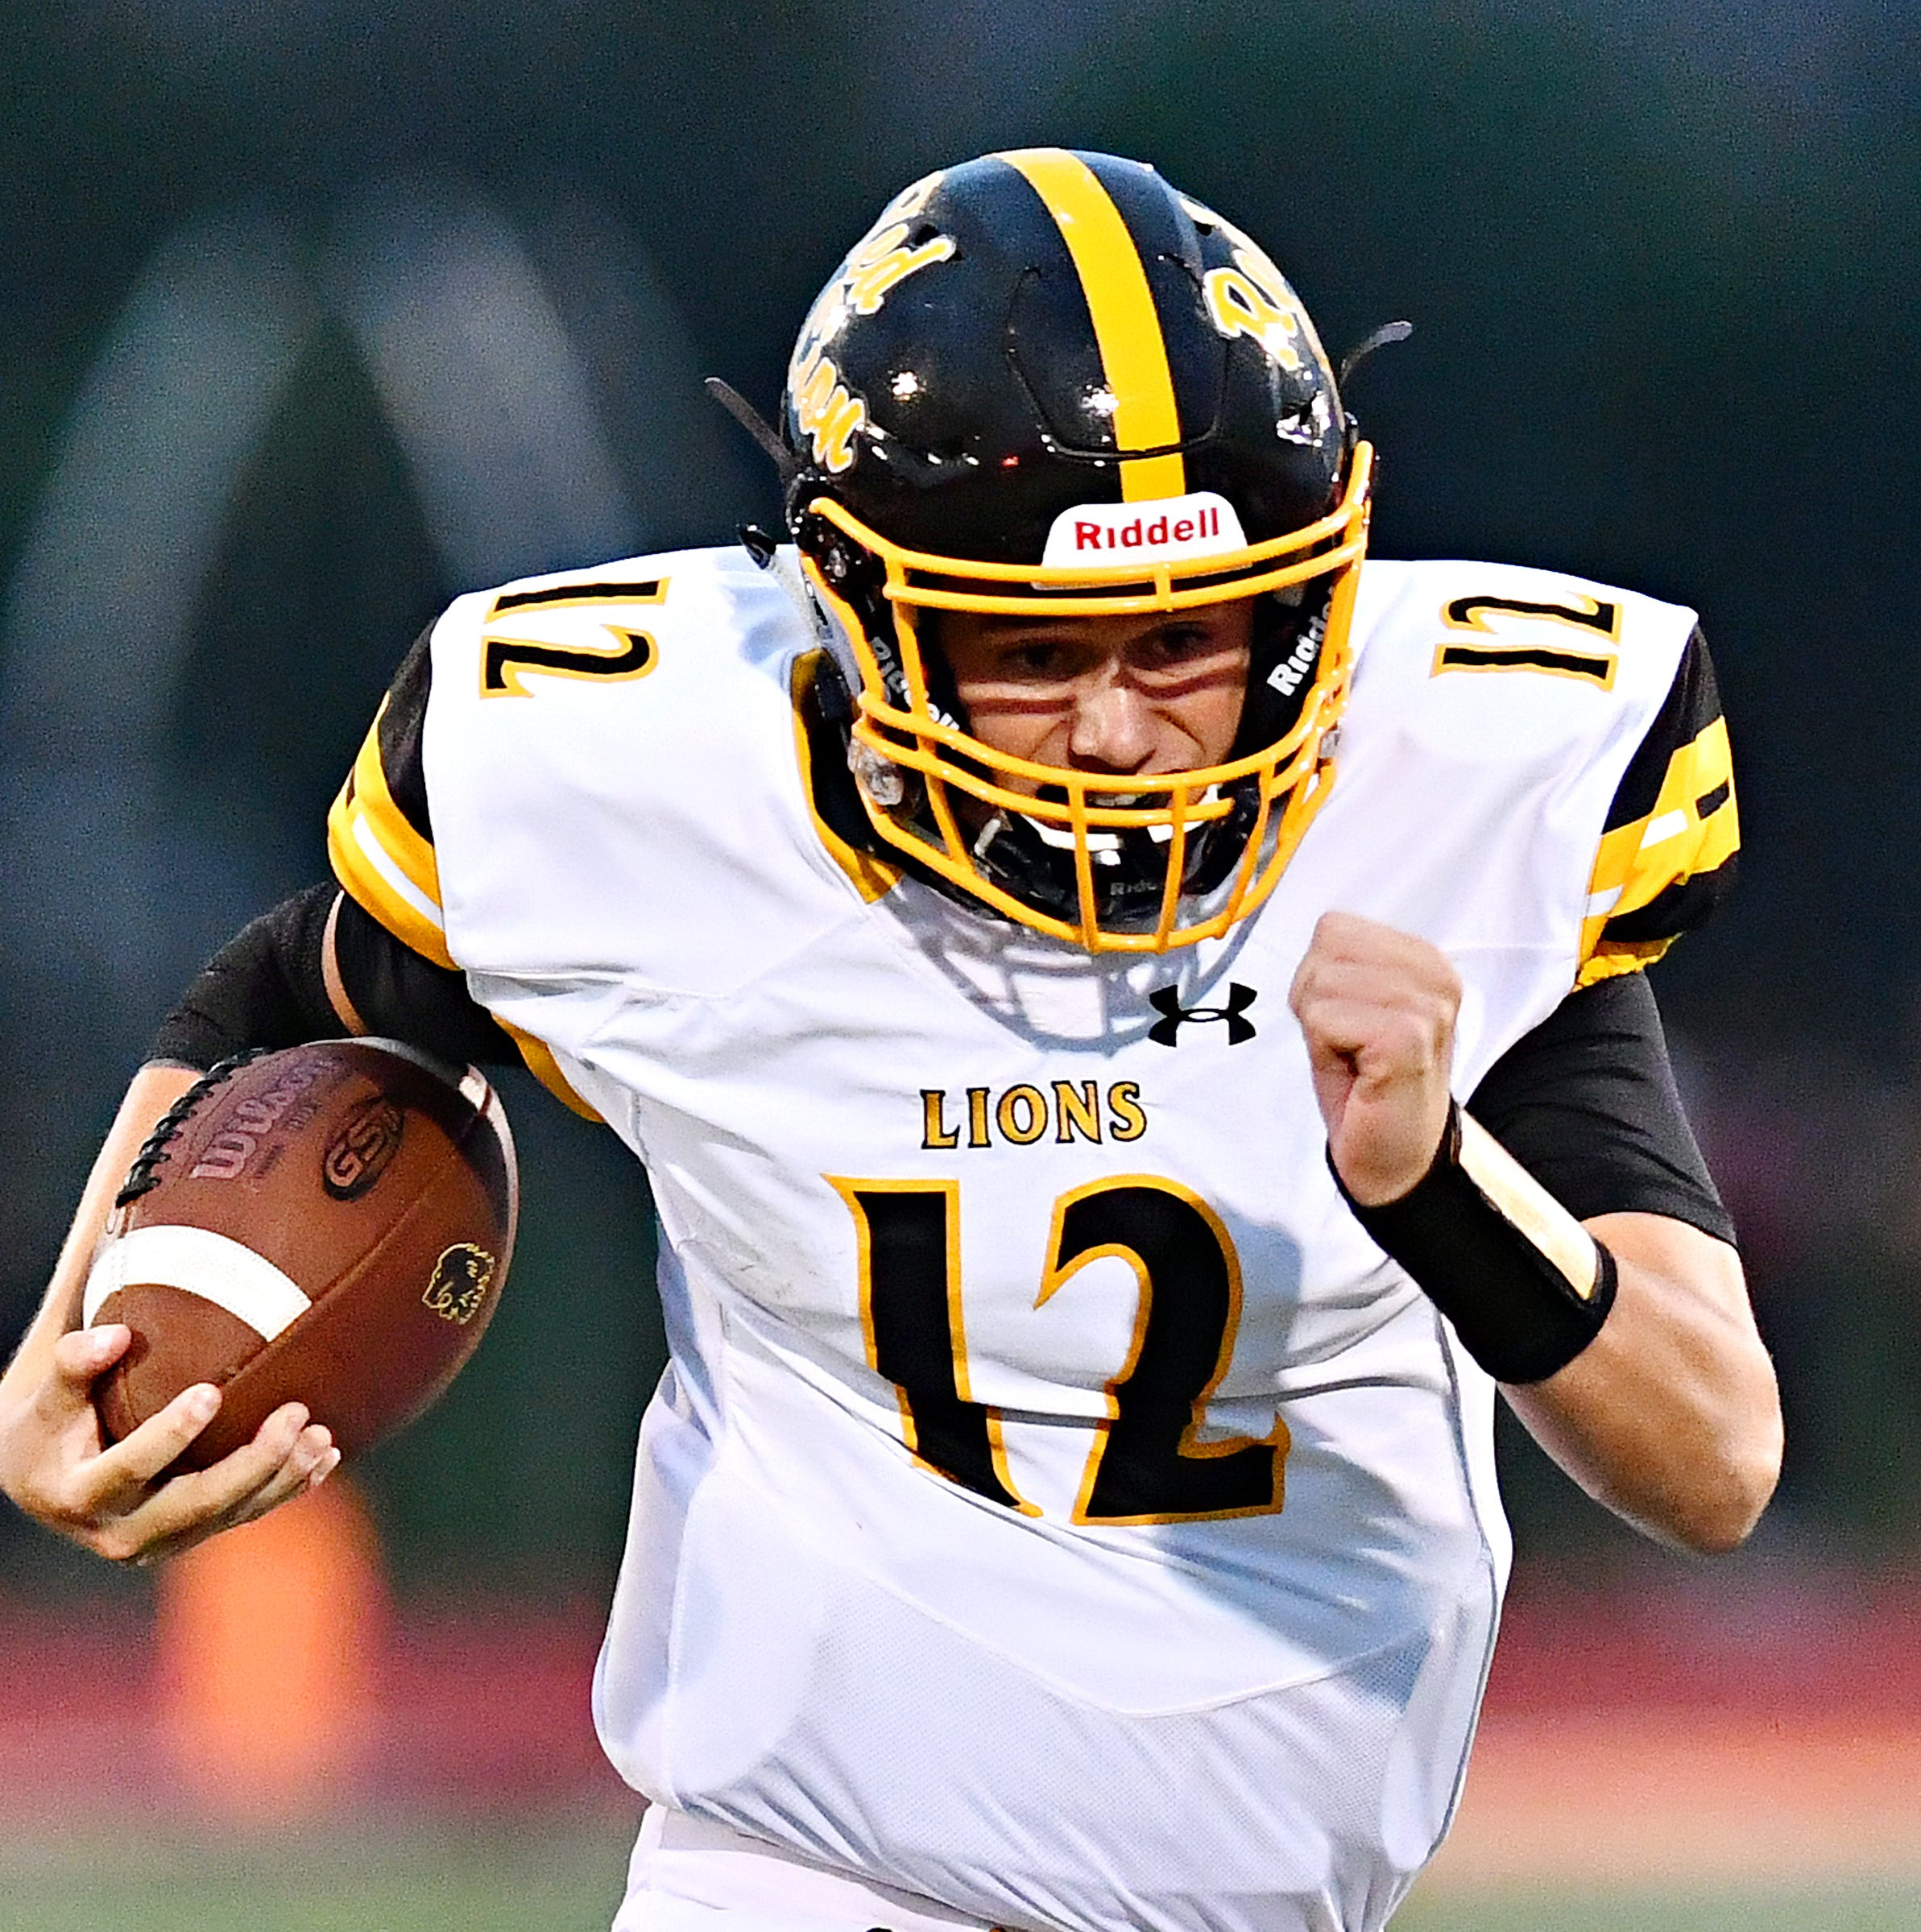 Red Lion quarterback Zach Mentzer uses his smarts to succeed in first year under center